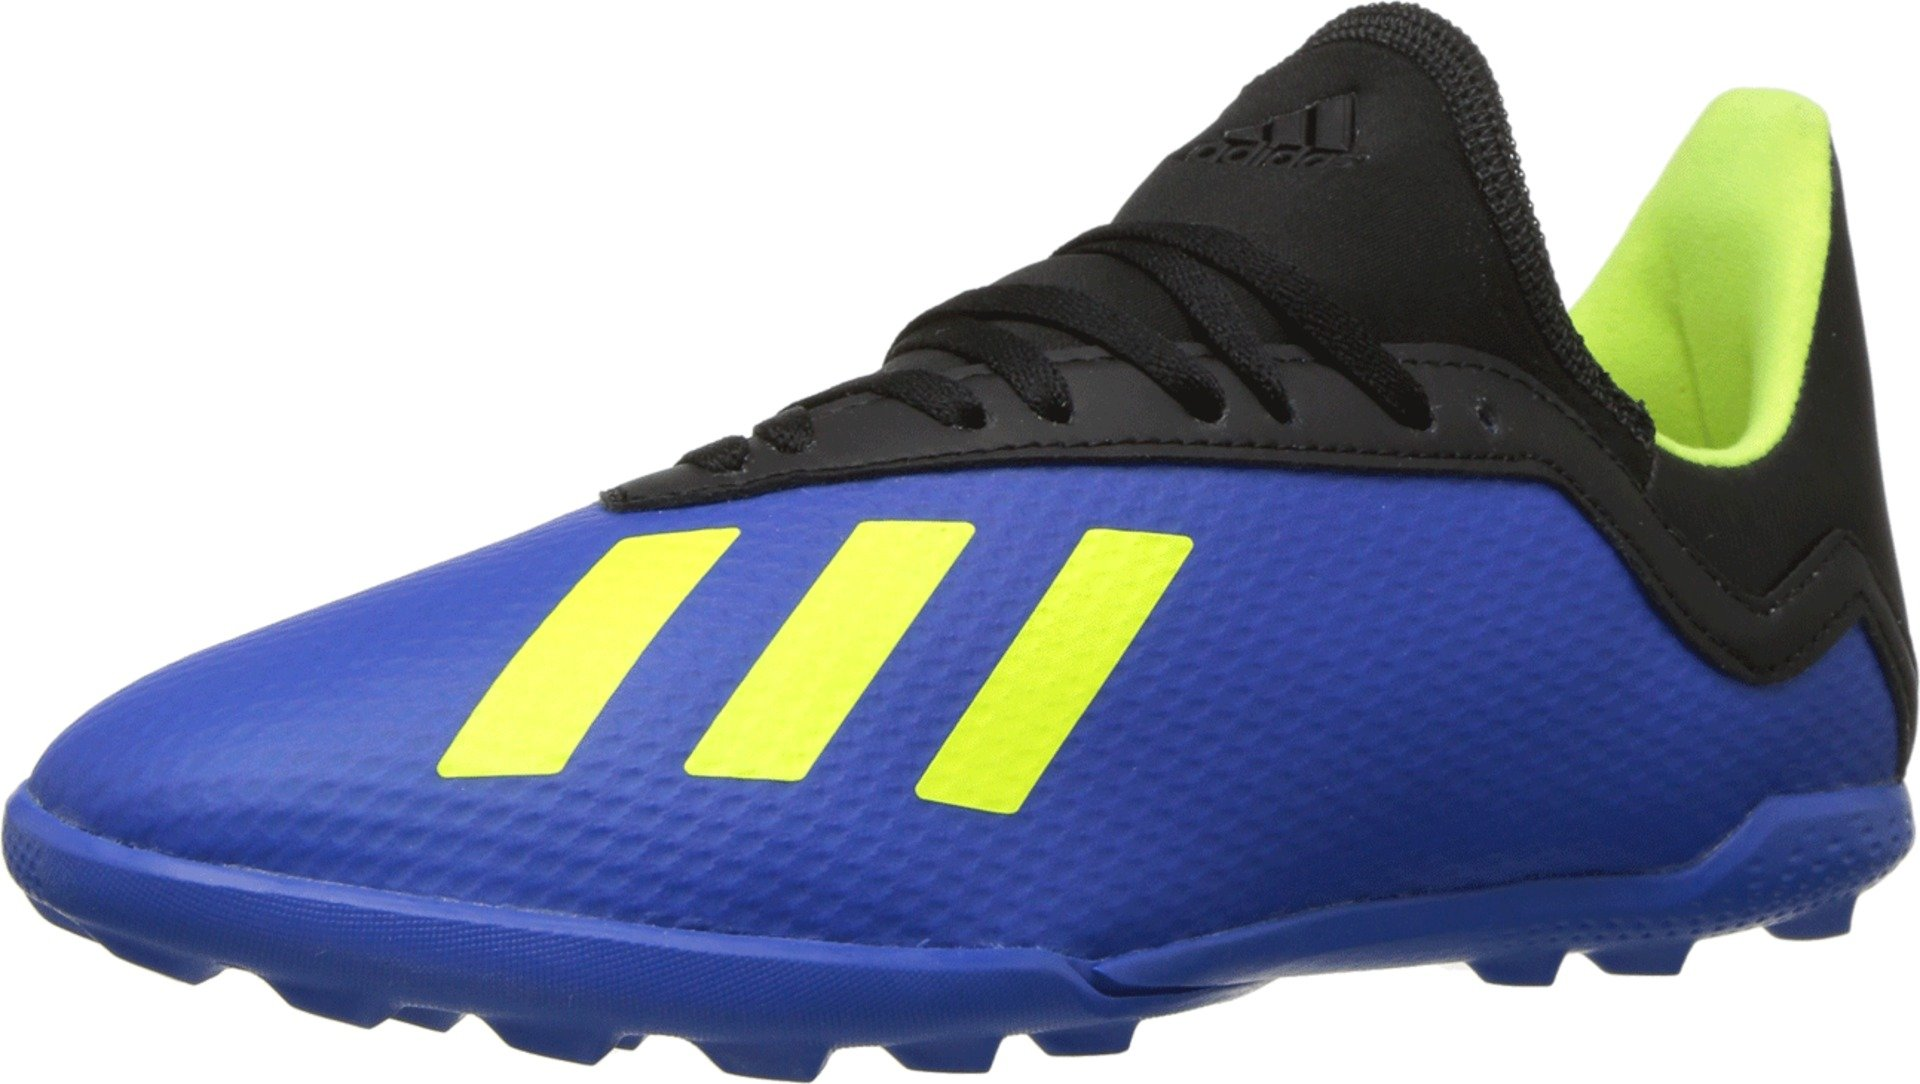 adidas Unisex X Tango 18.3 TF J Soccer Shoe, Football BlueSolar Yellowcore Black, 3 M US Big Kid